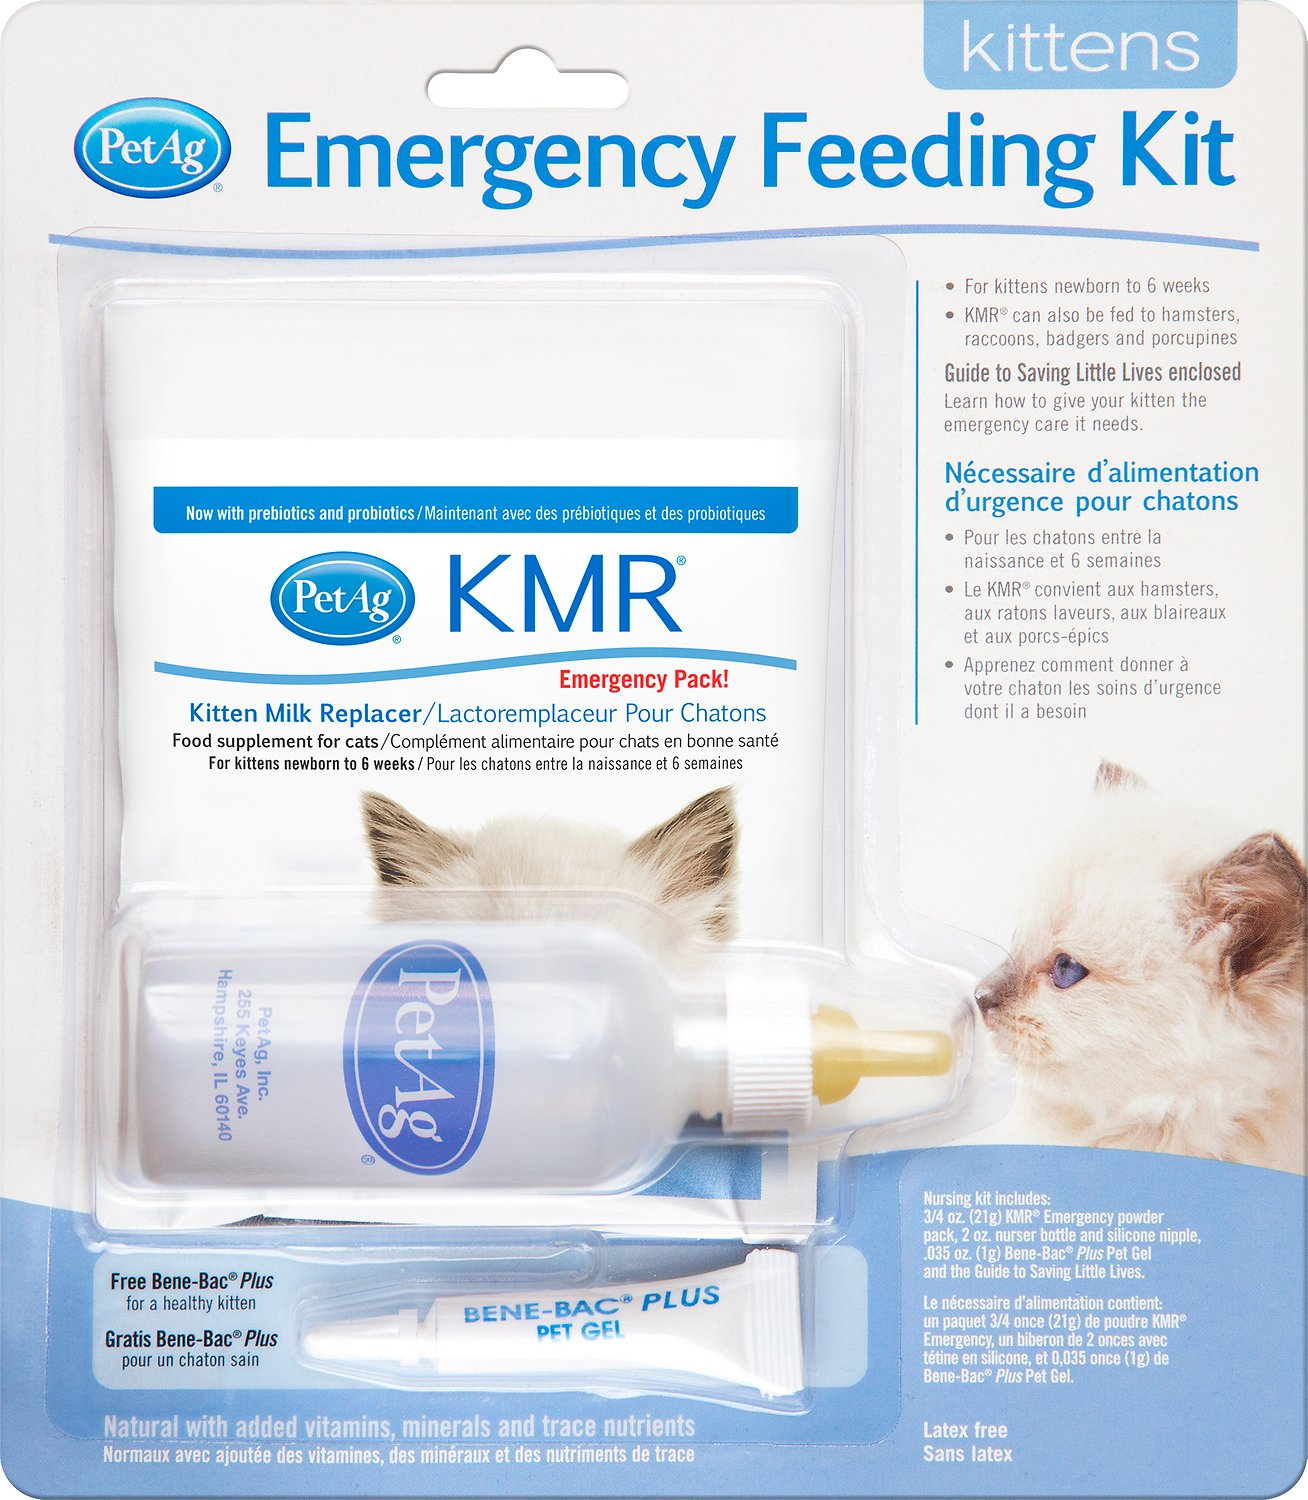 PetAg KMR Emergency Feeding Kit for Kittens Image